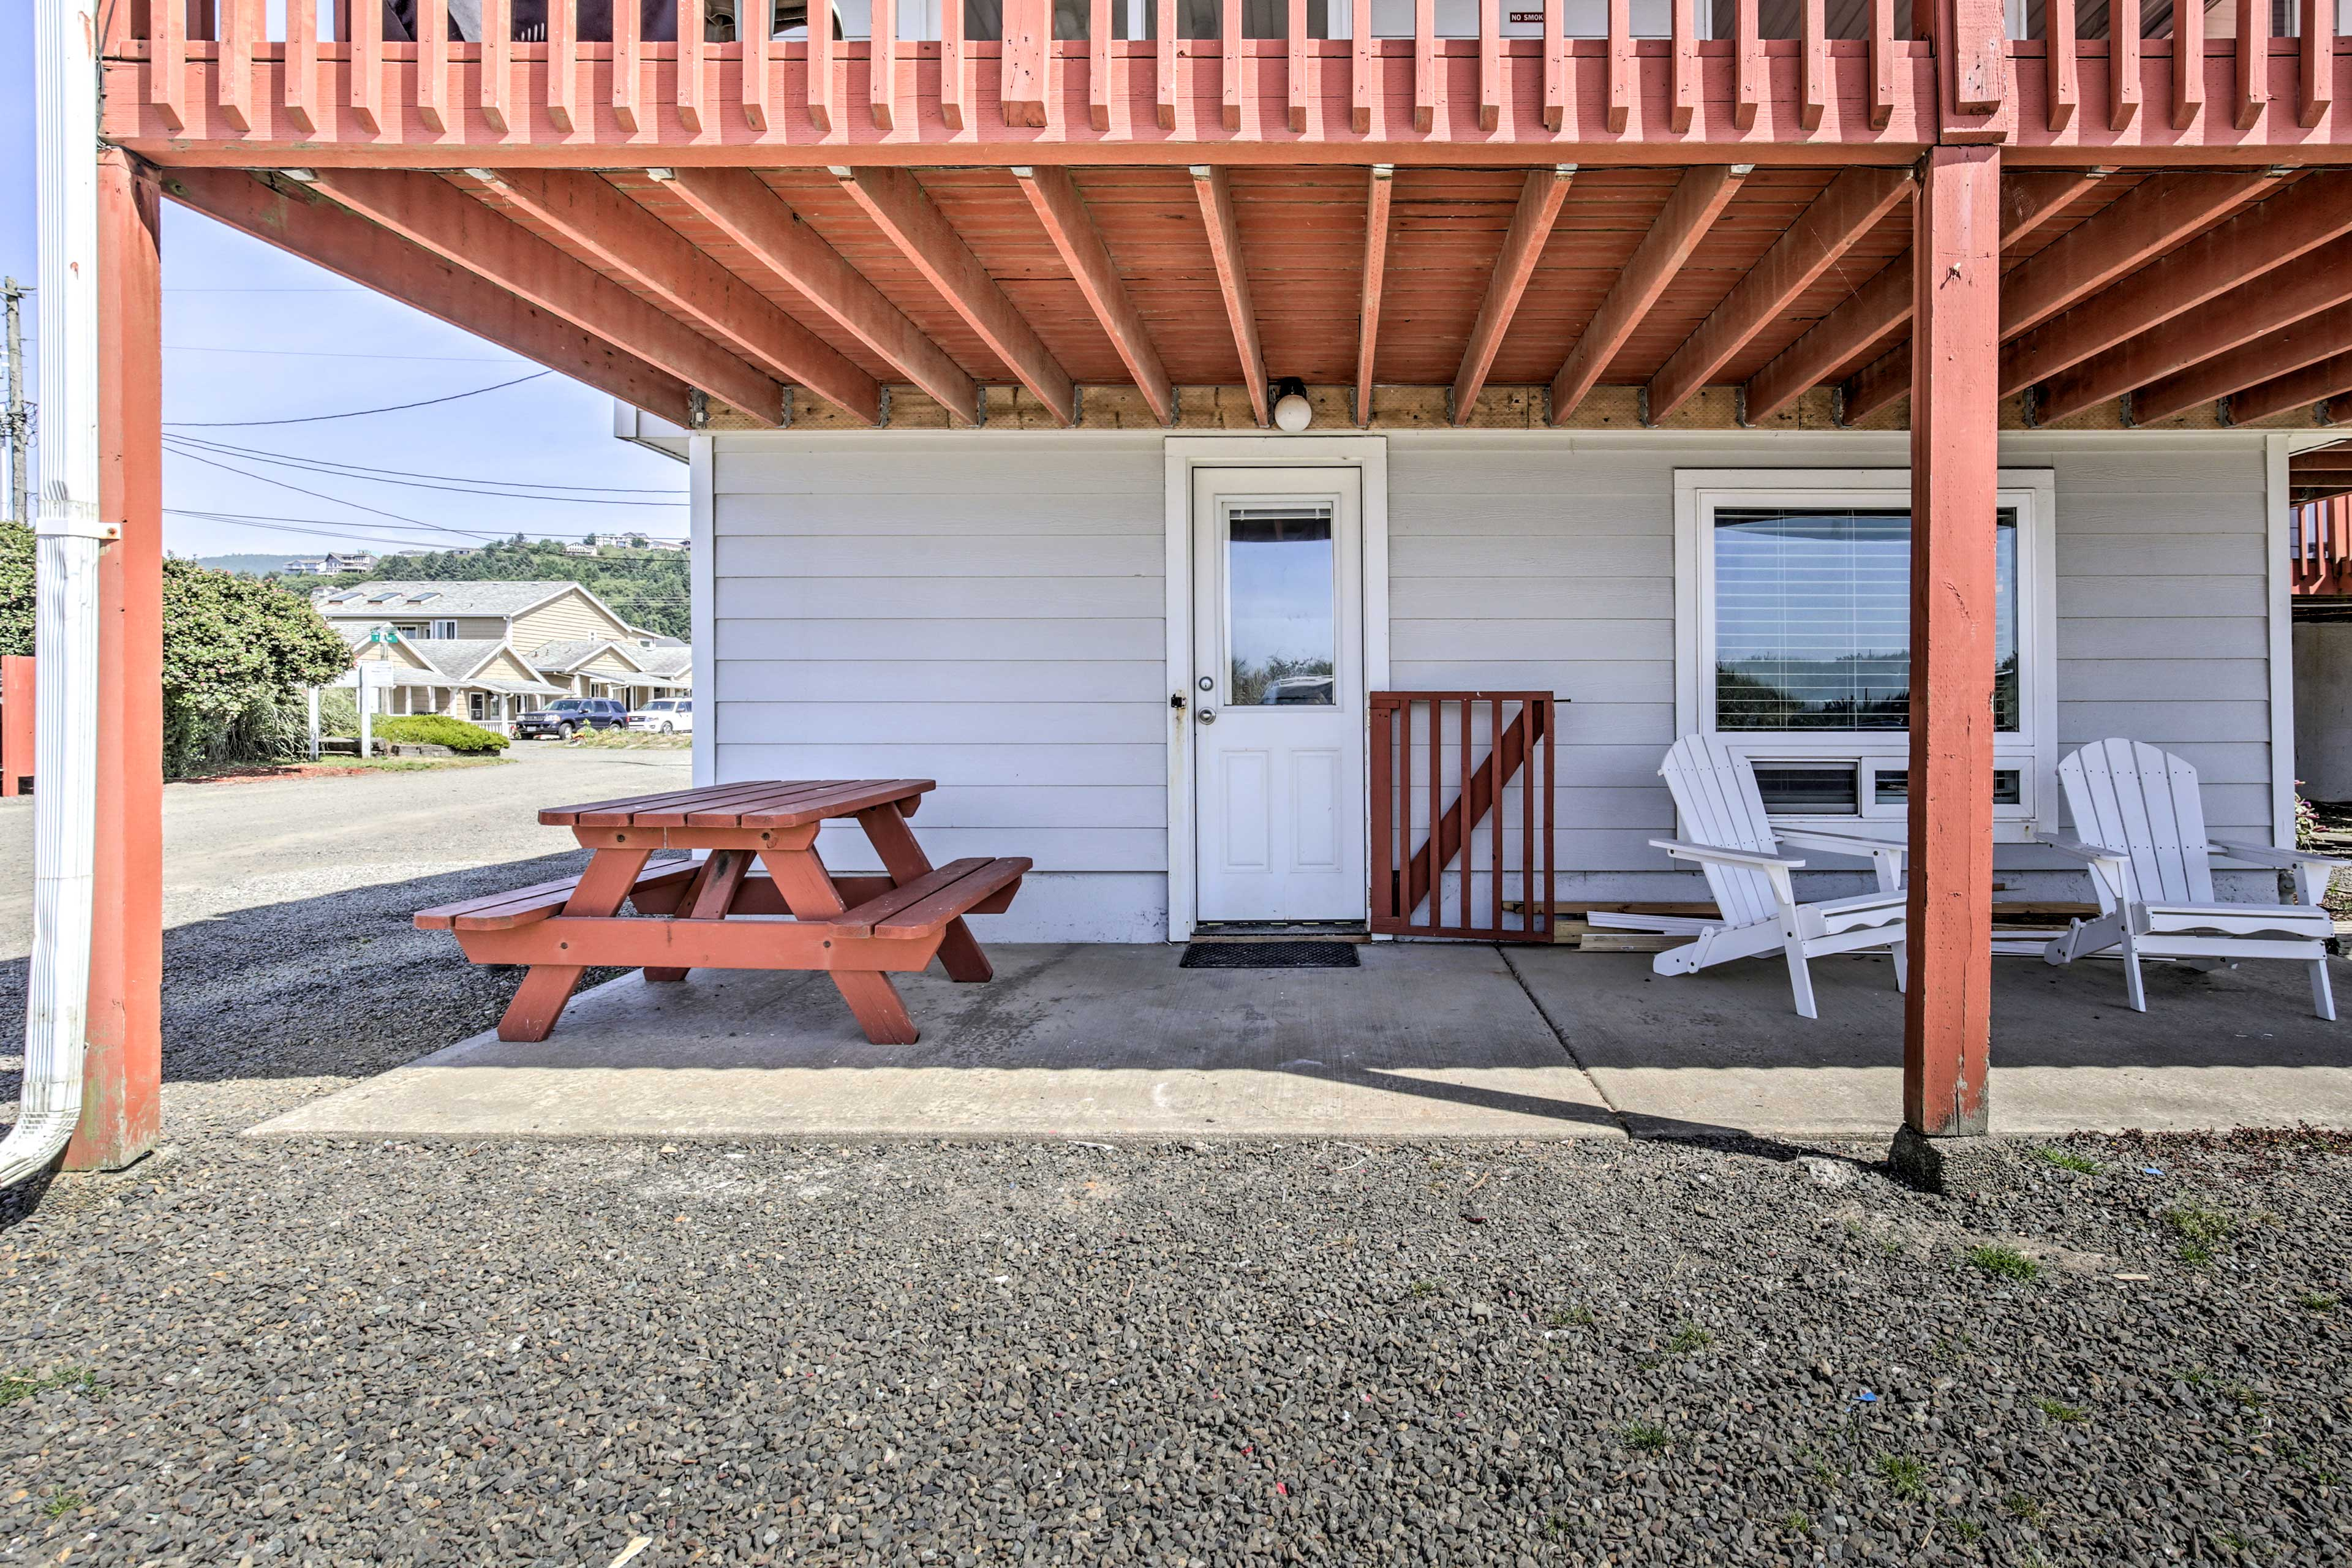 The first-floor unit boasts a shaded patio with a picnic table an chairs.